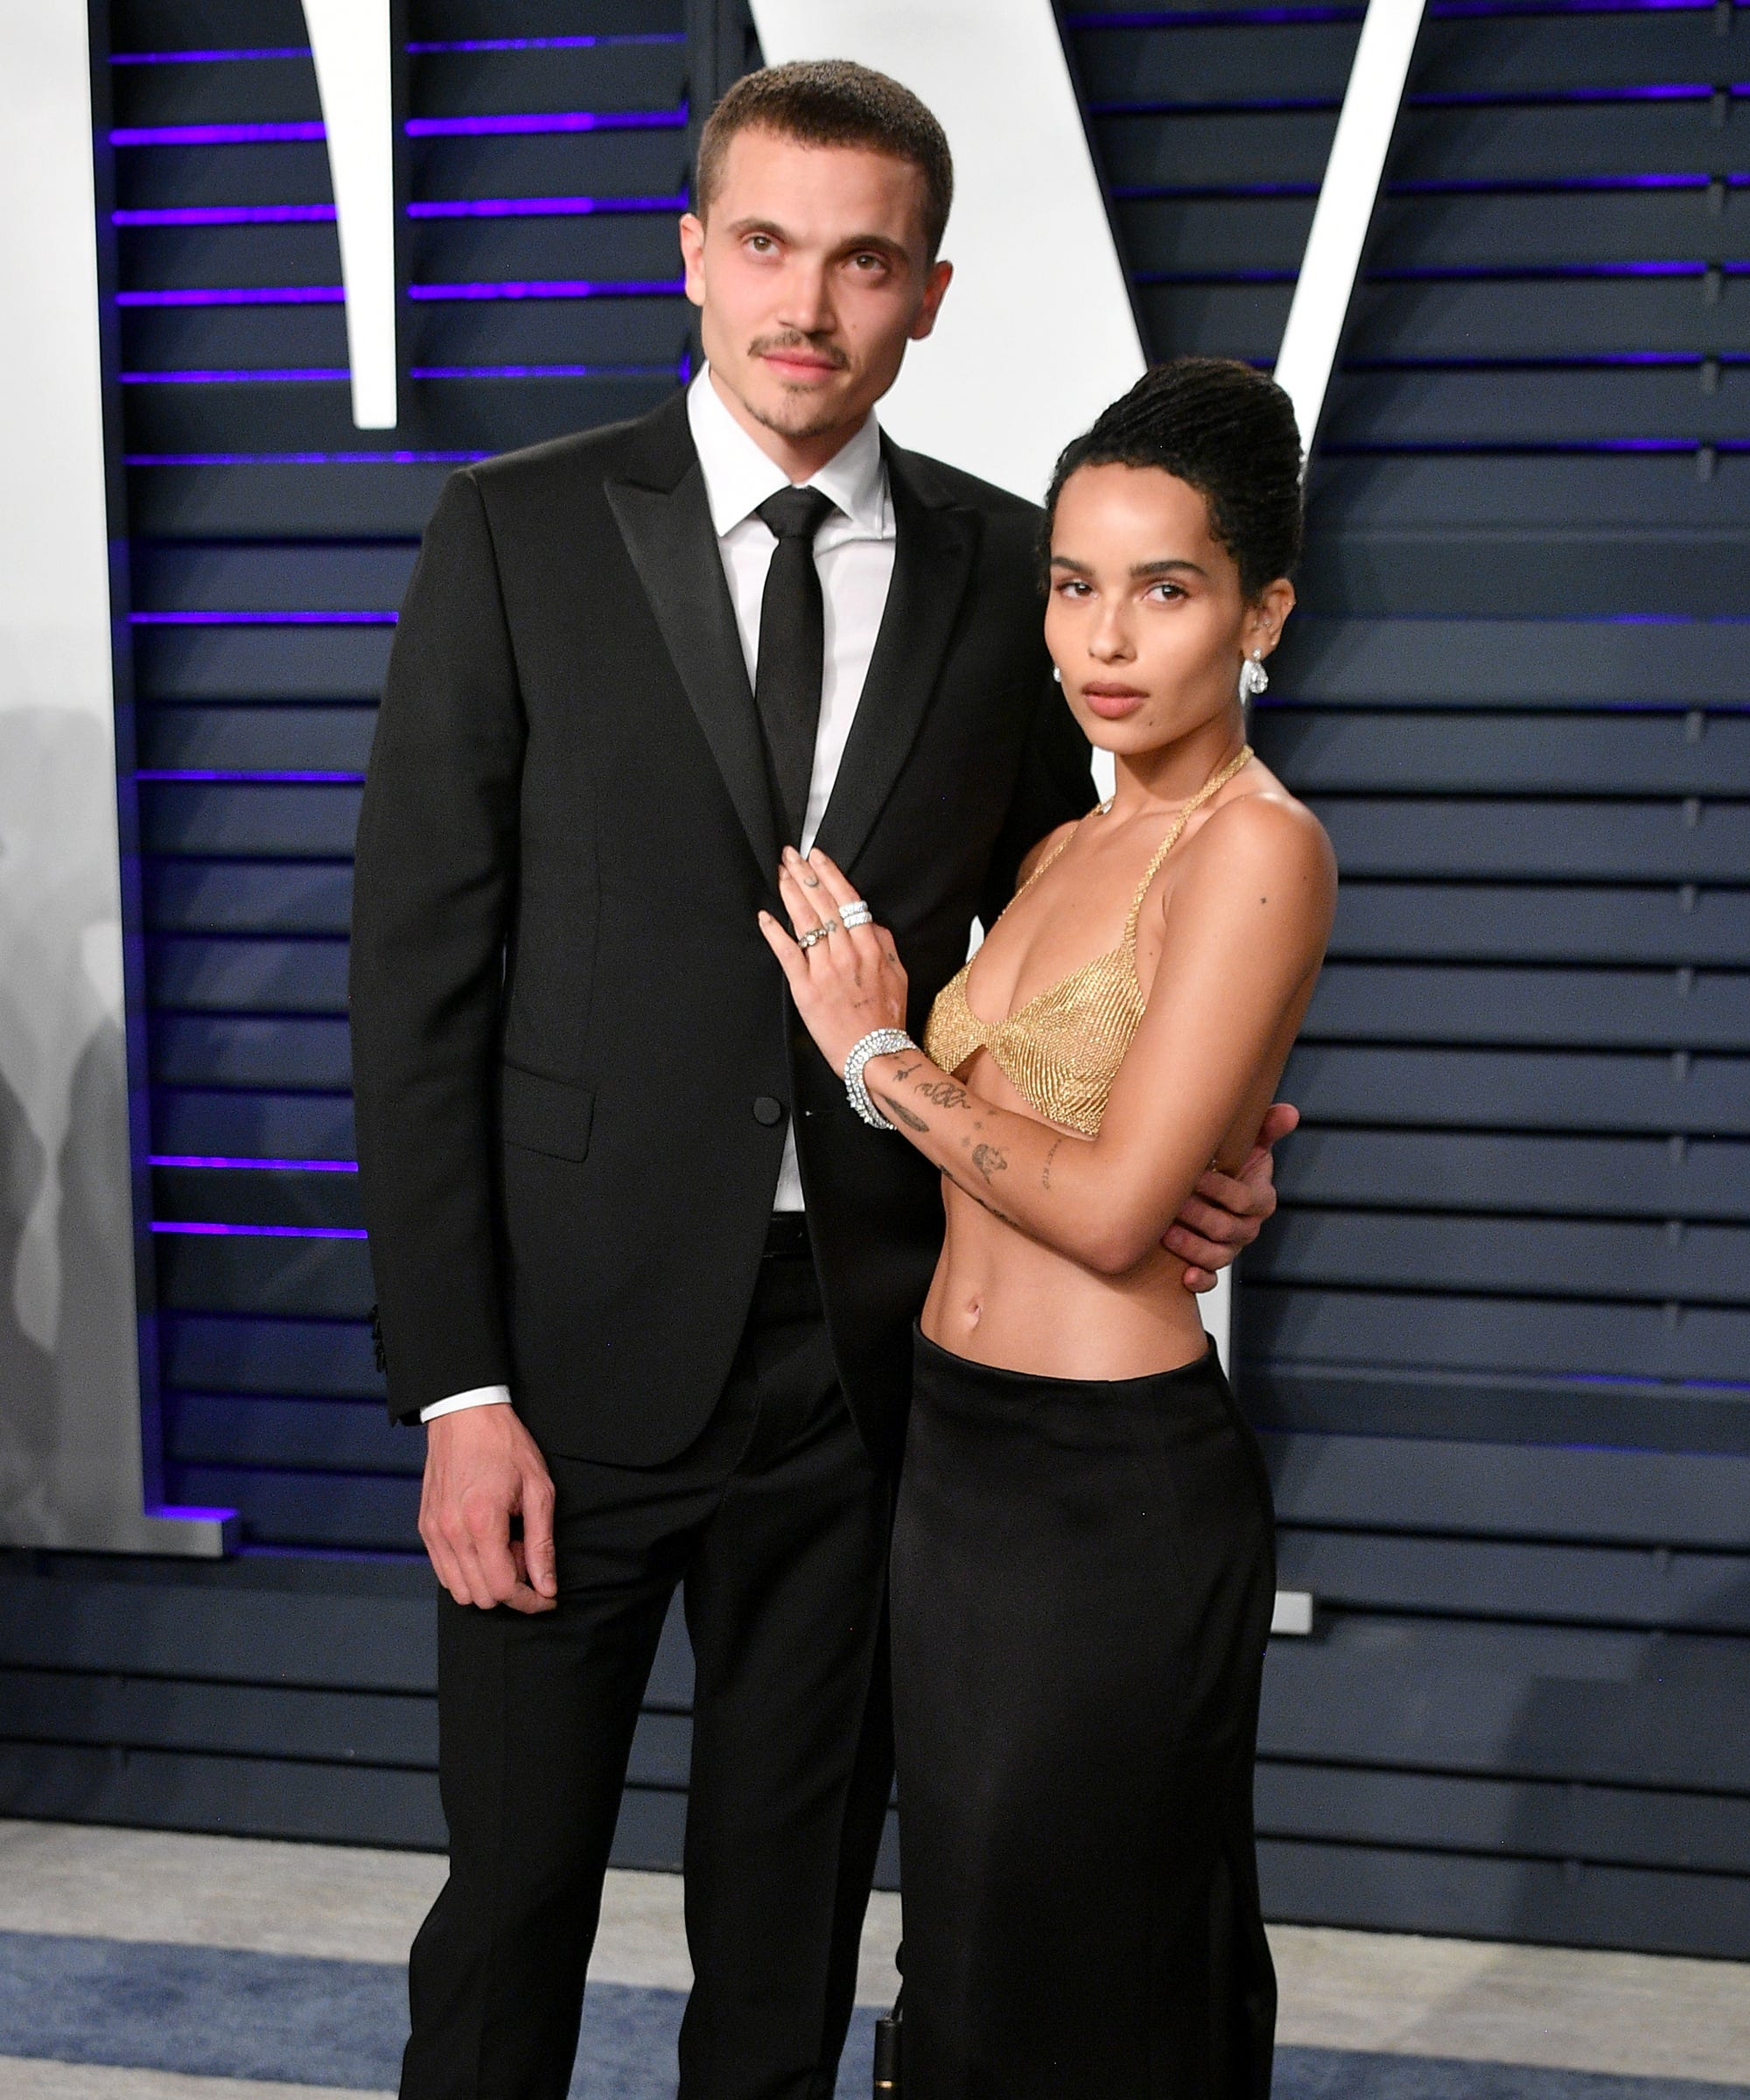 Zoë Kravitz Just Reportedly One-Upped Her Secret Engagement With A Secret Wedding